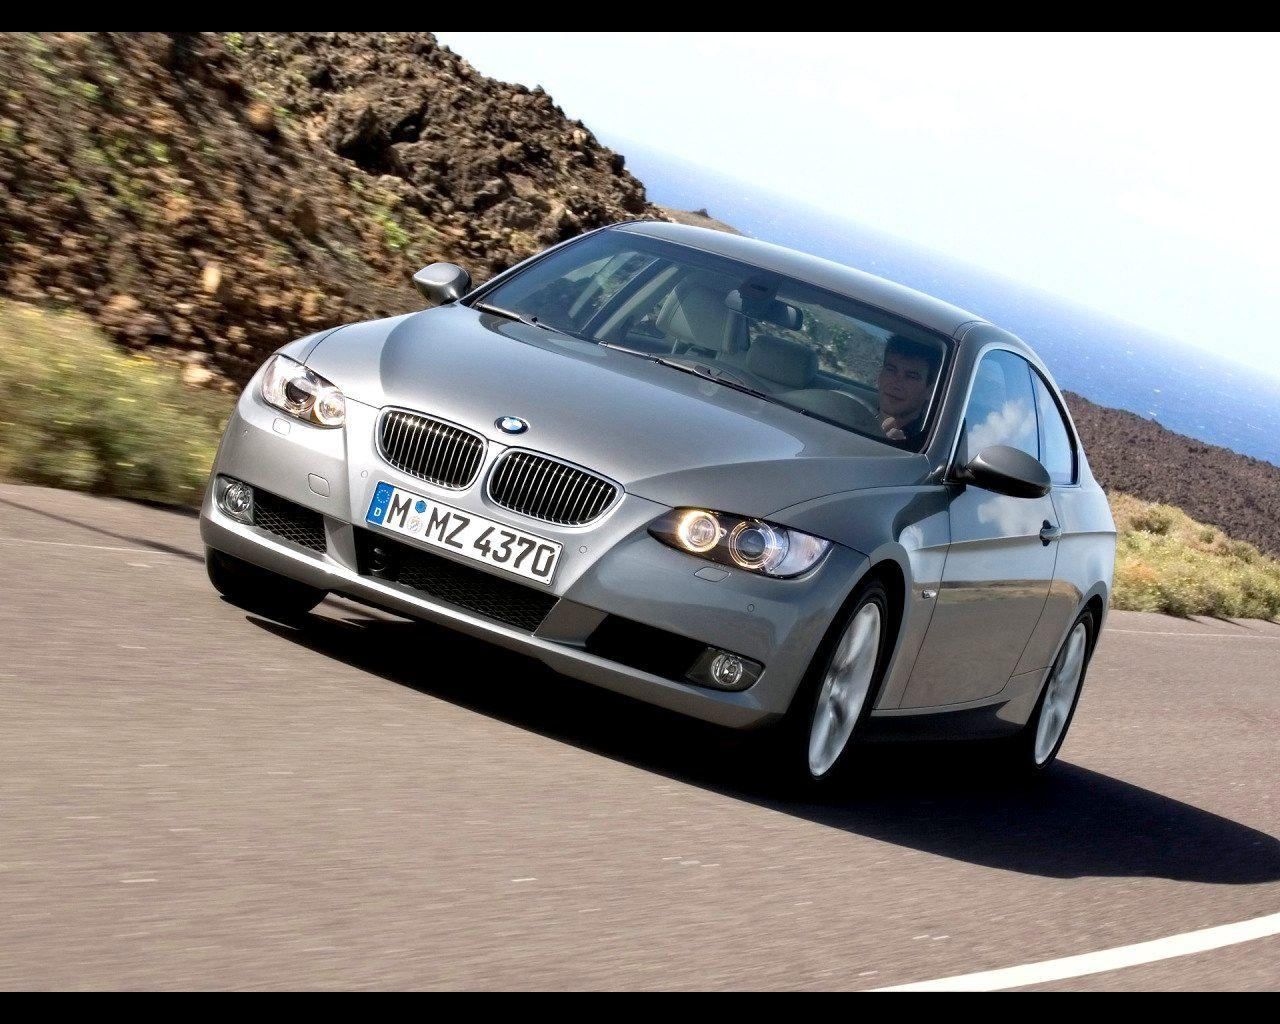 2007 BMW 335i Coupe Wallpaper 01 - 1280x1024